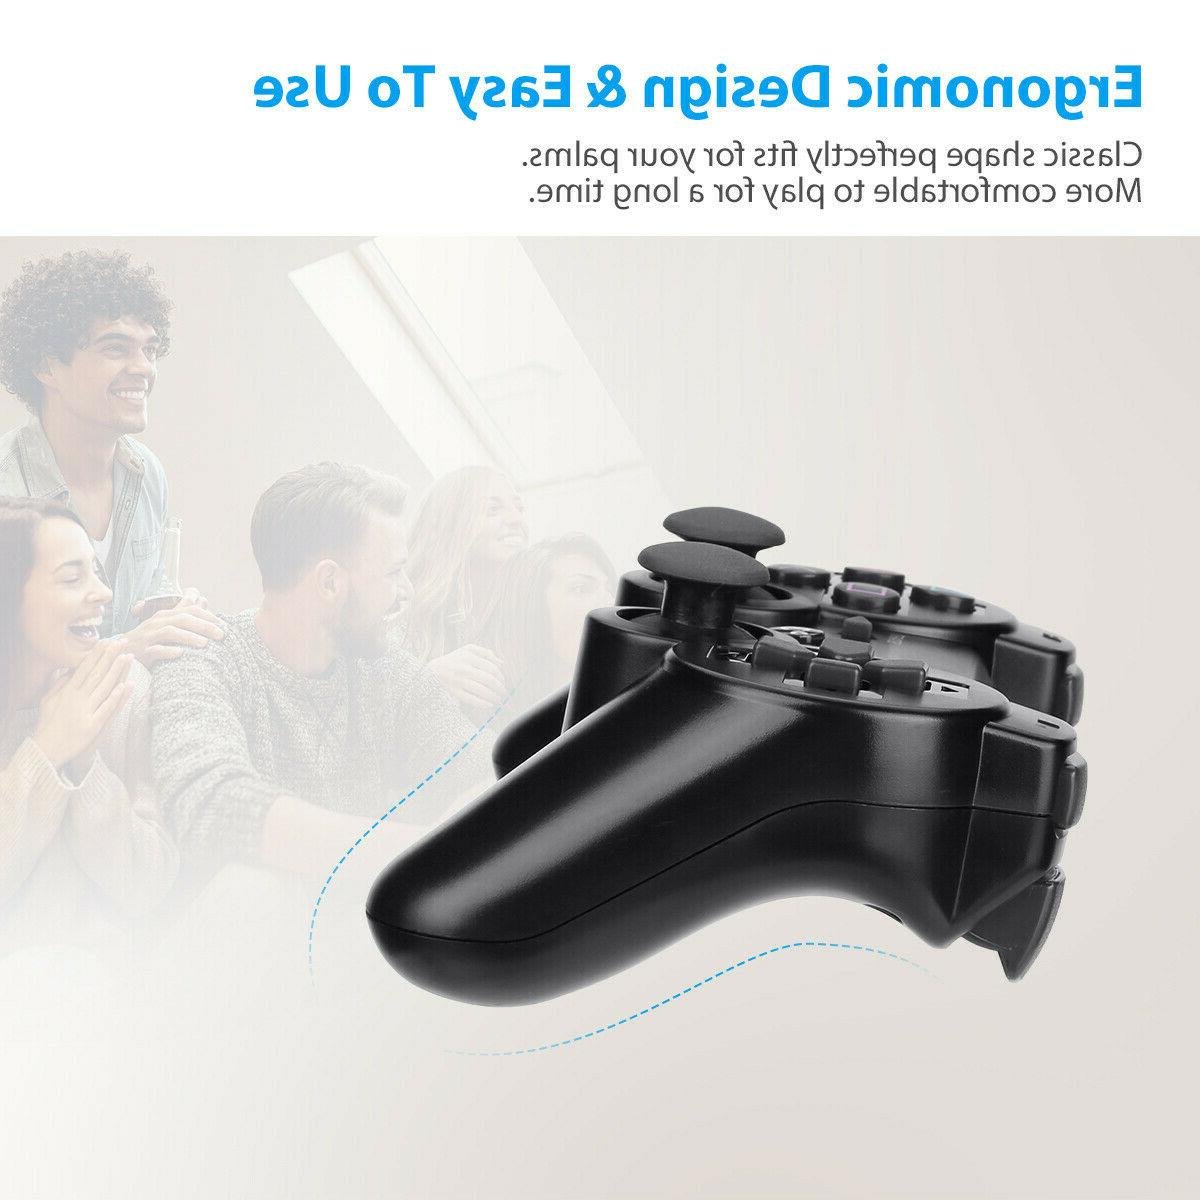 2 Wireless Video For PS3 Playstation 3